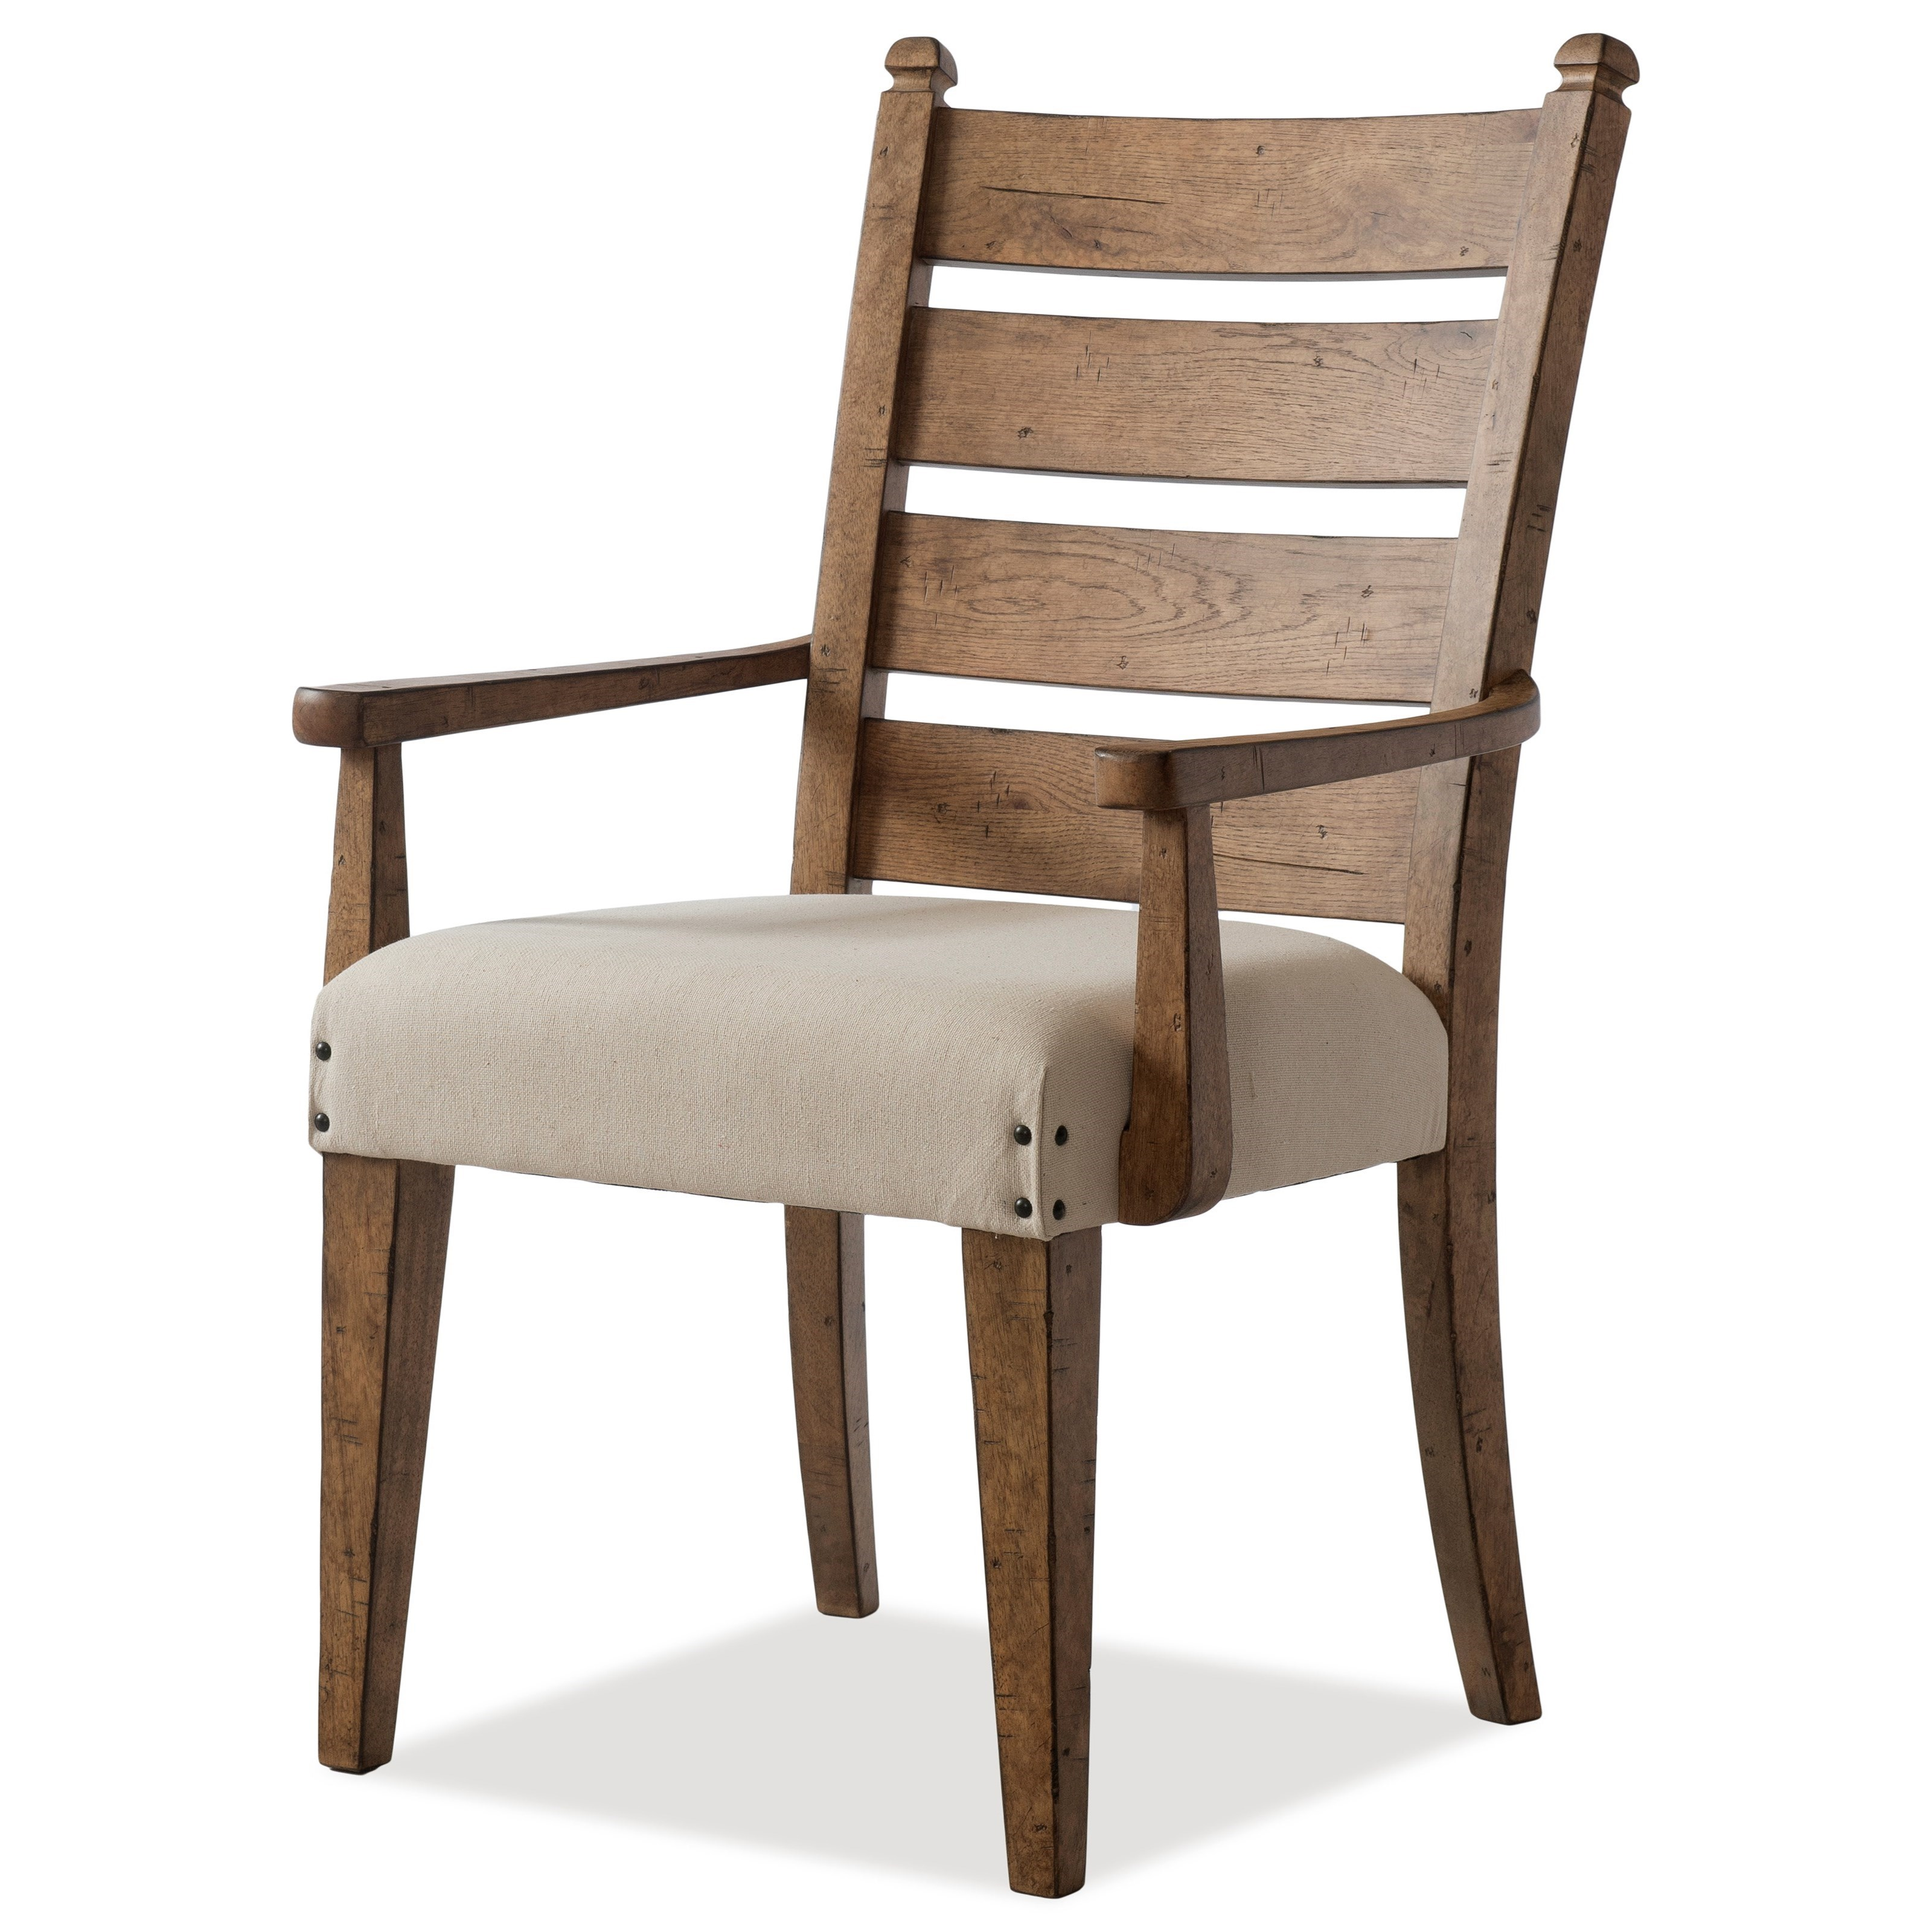 Coming Home Gathering Dining Arm Chair by Trisha Yearwood Home Collection by Klaussner at Rotmans